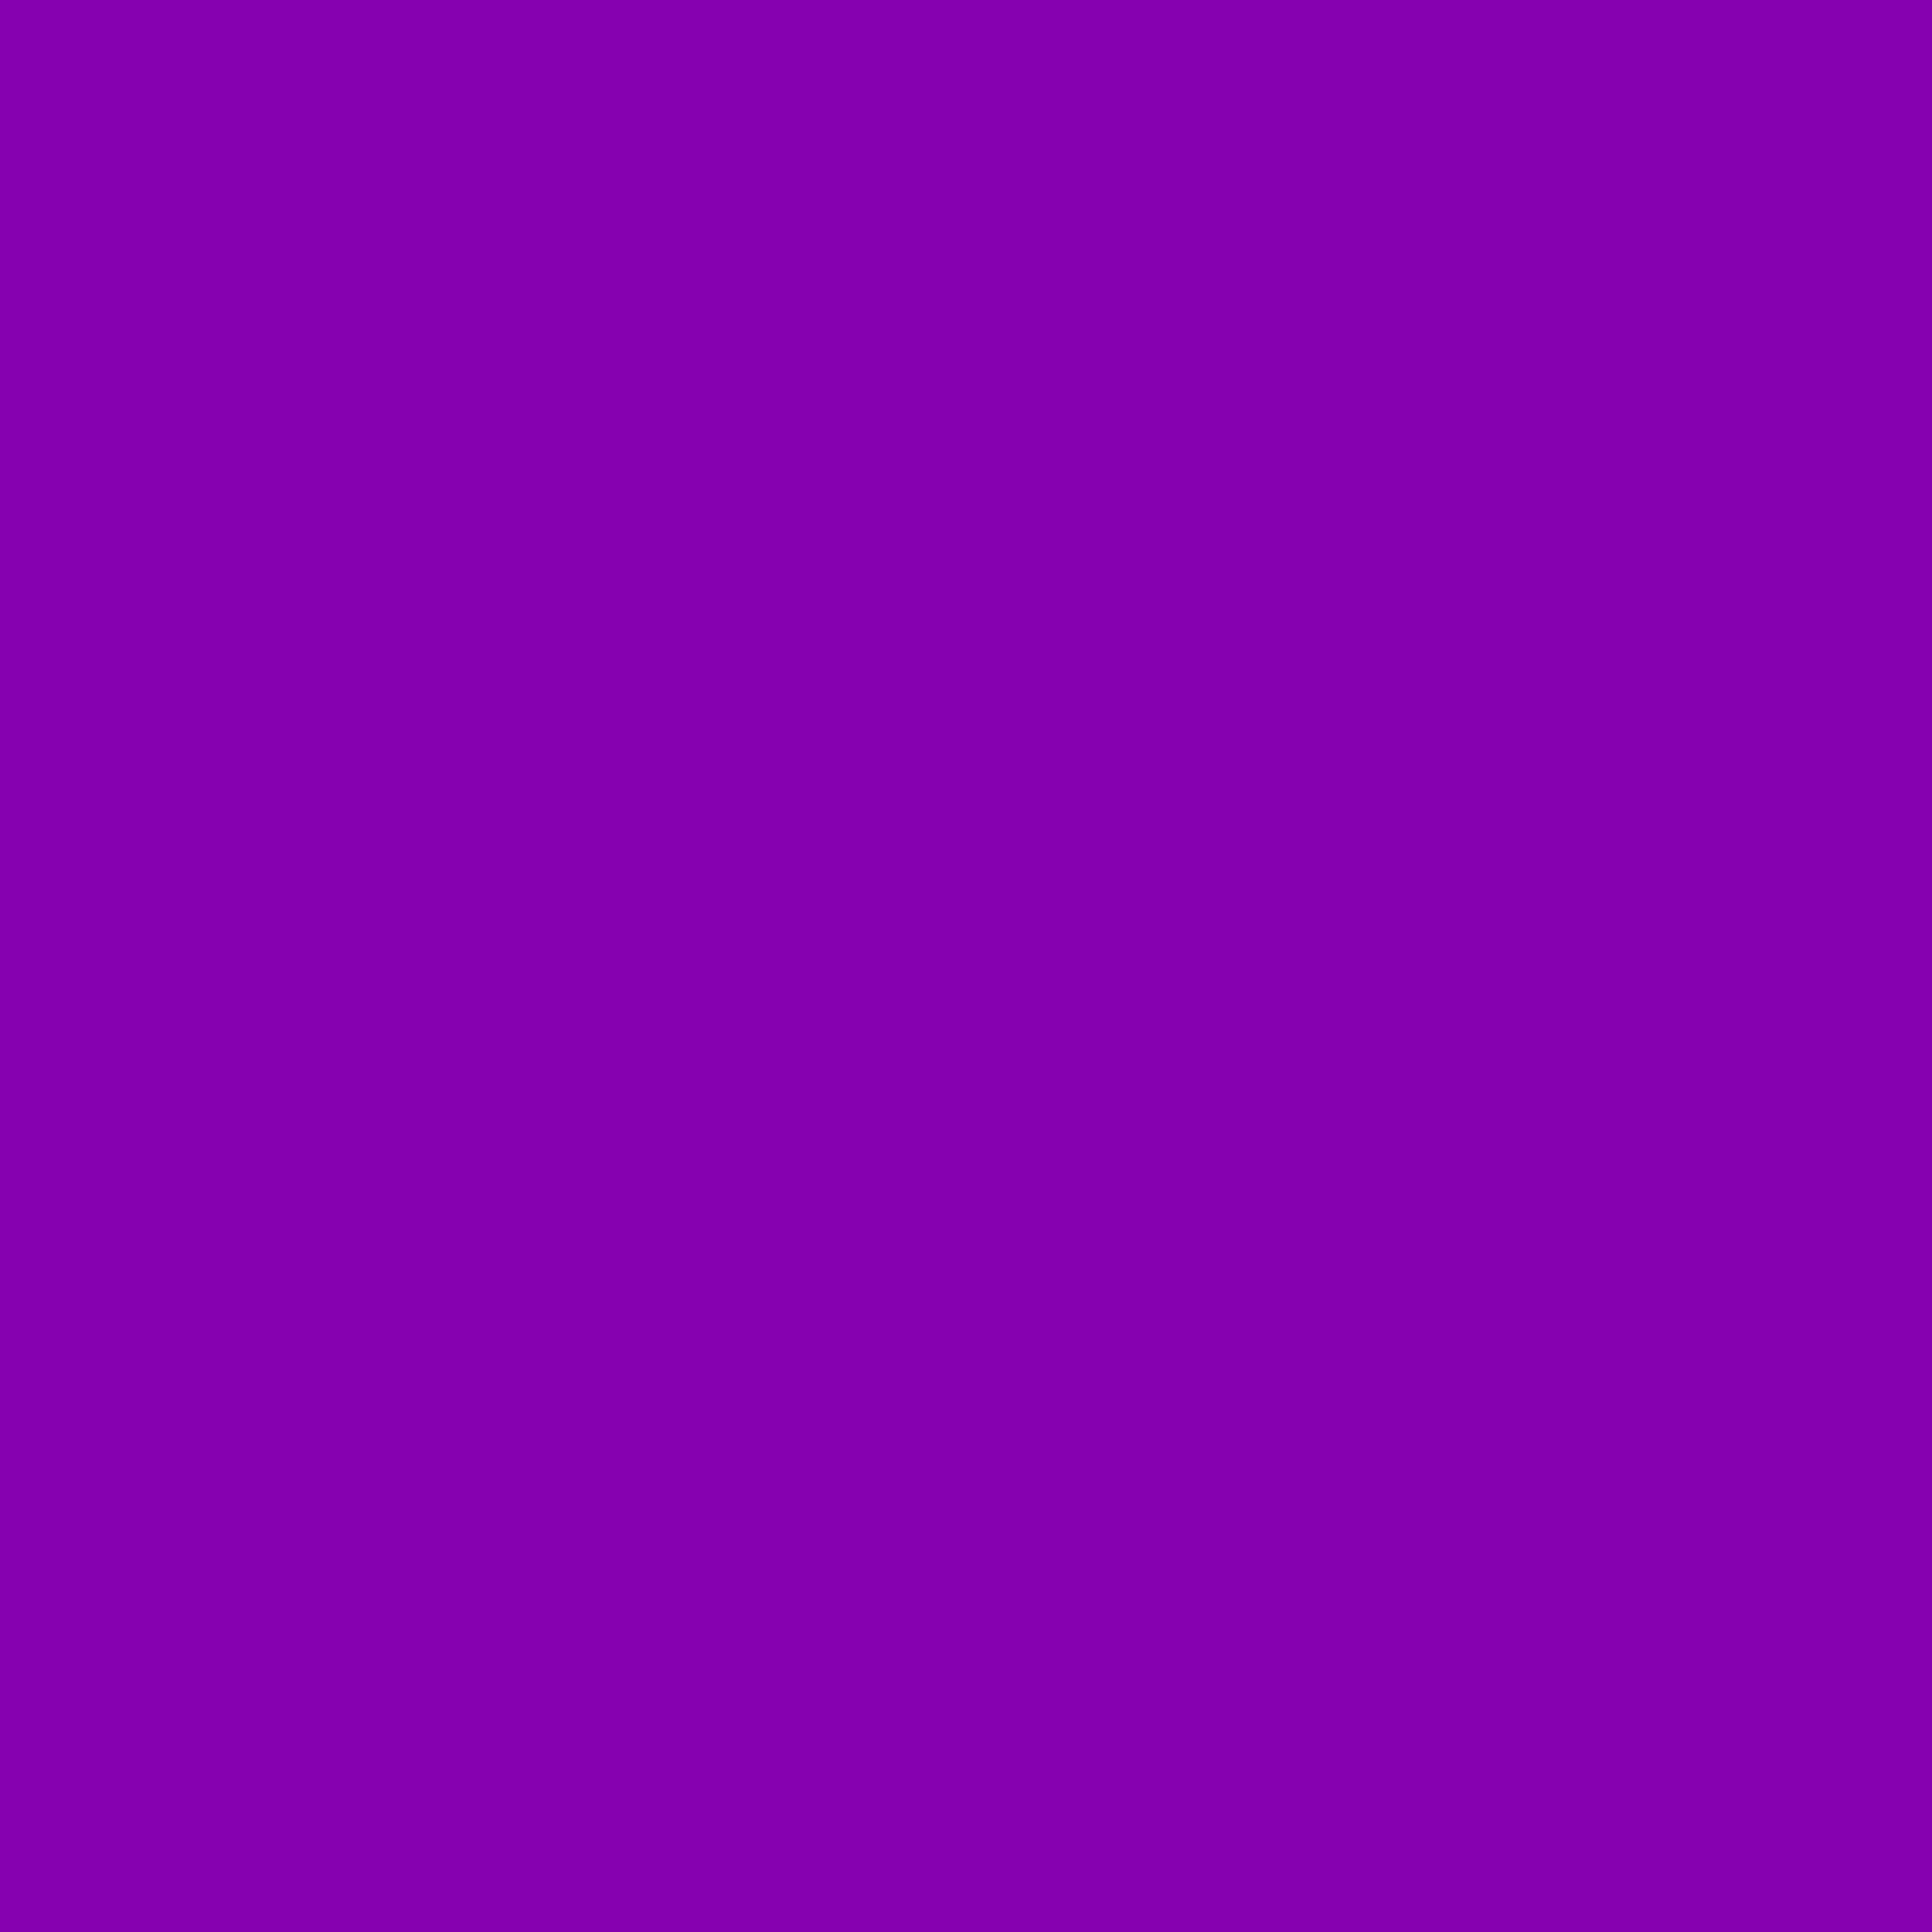 3600x3600 Violet RYB Solid Color Background